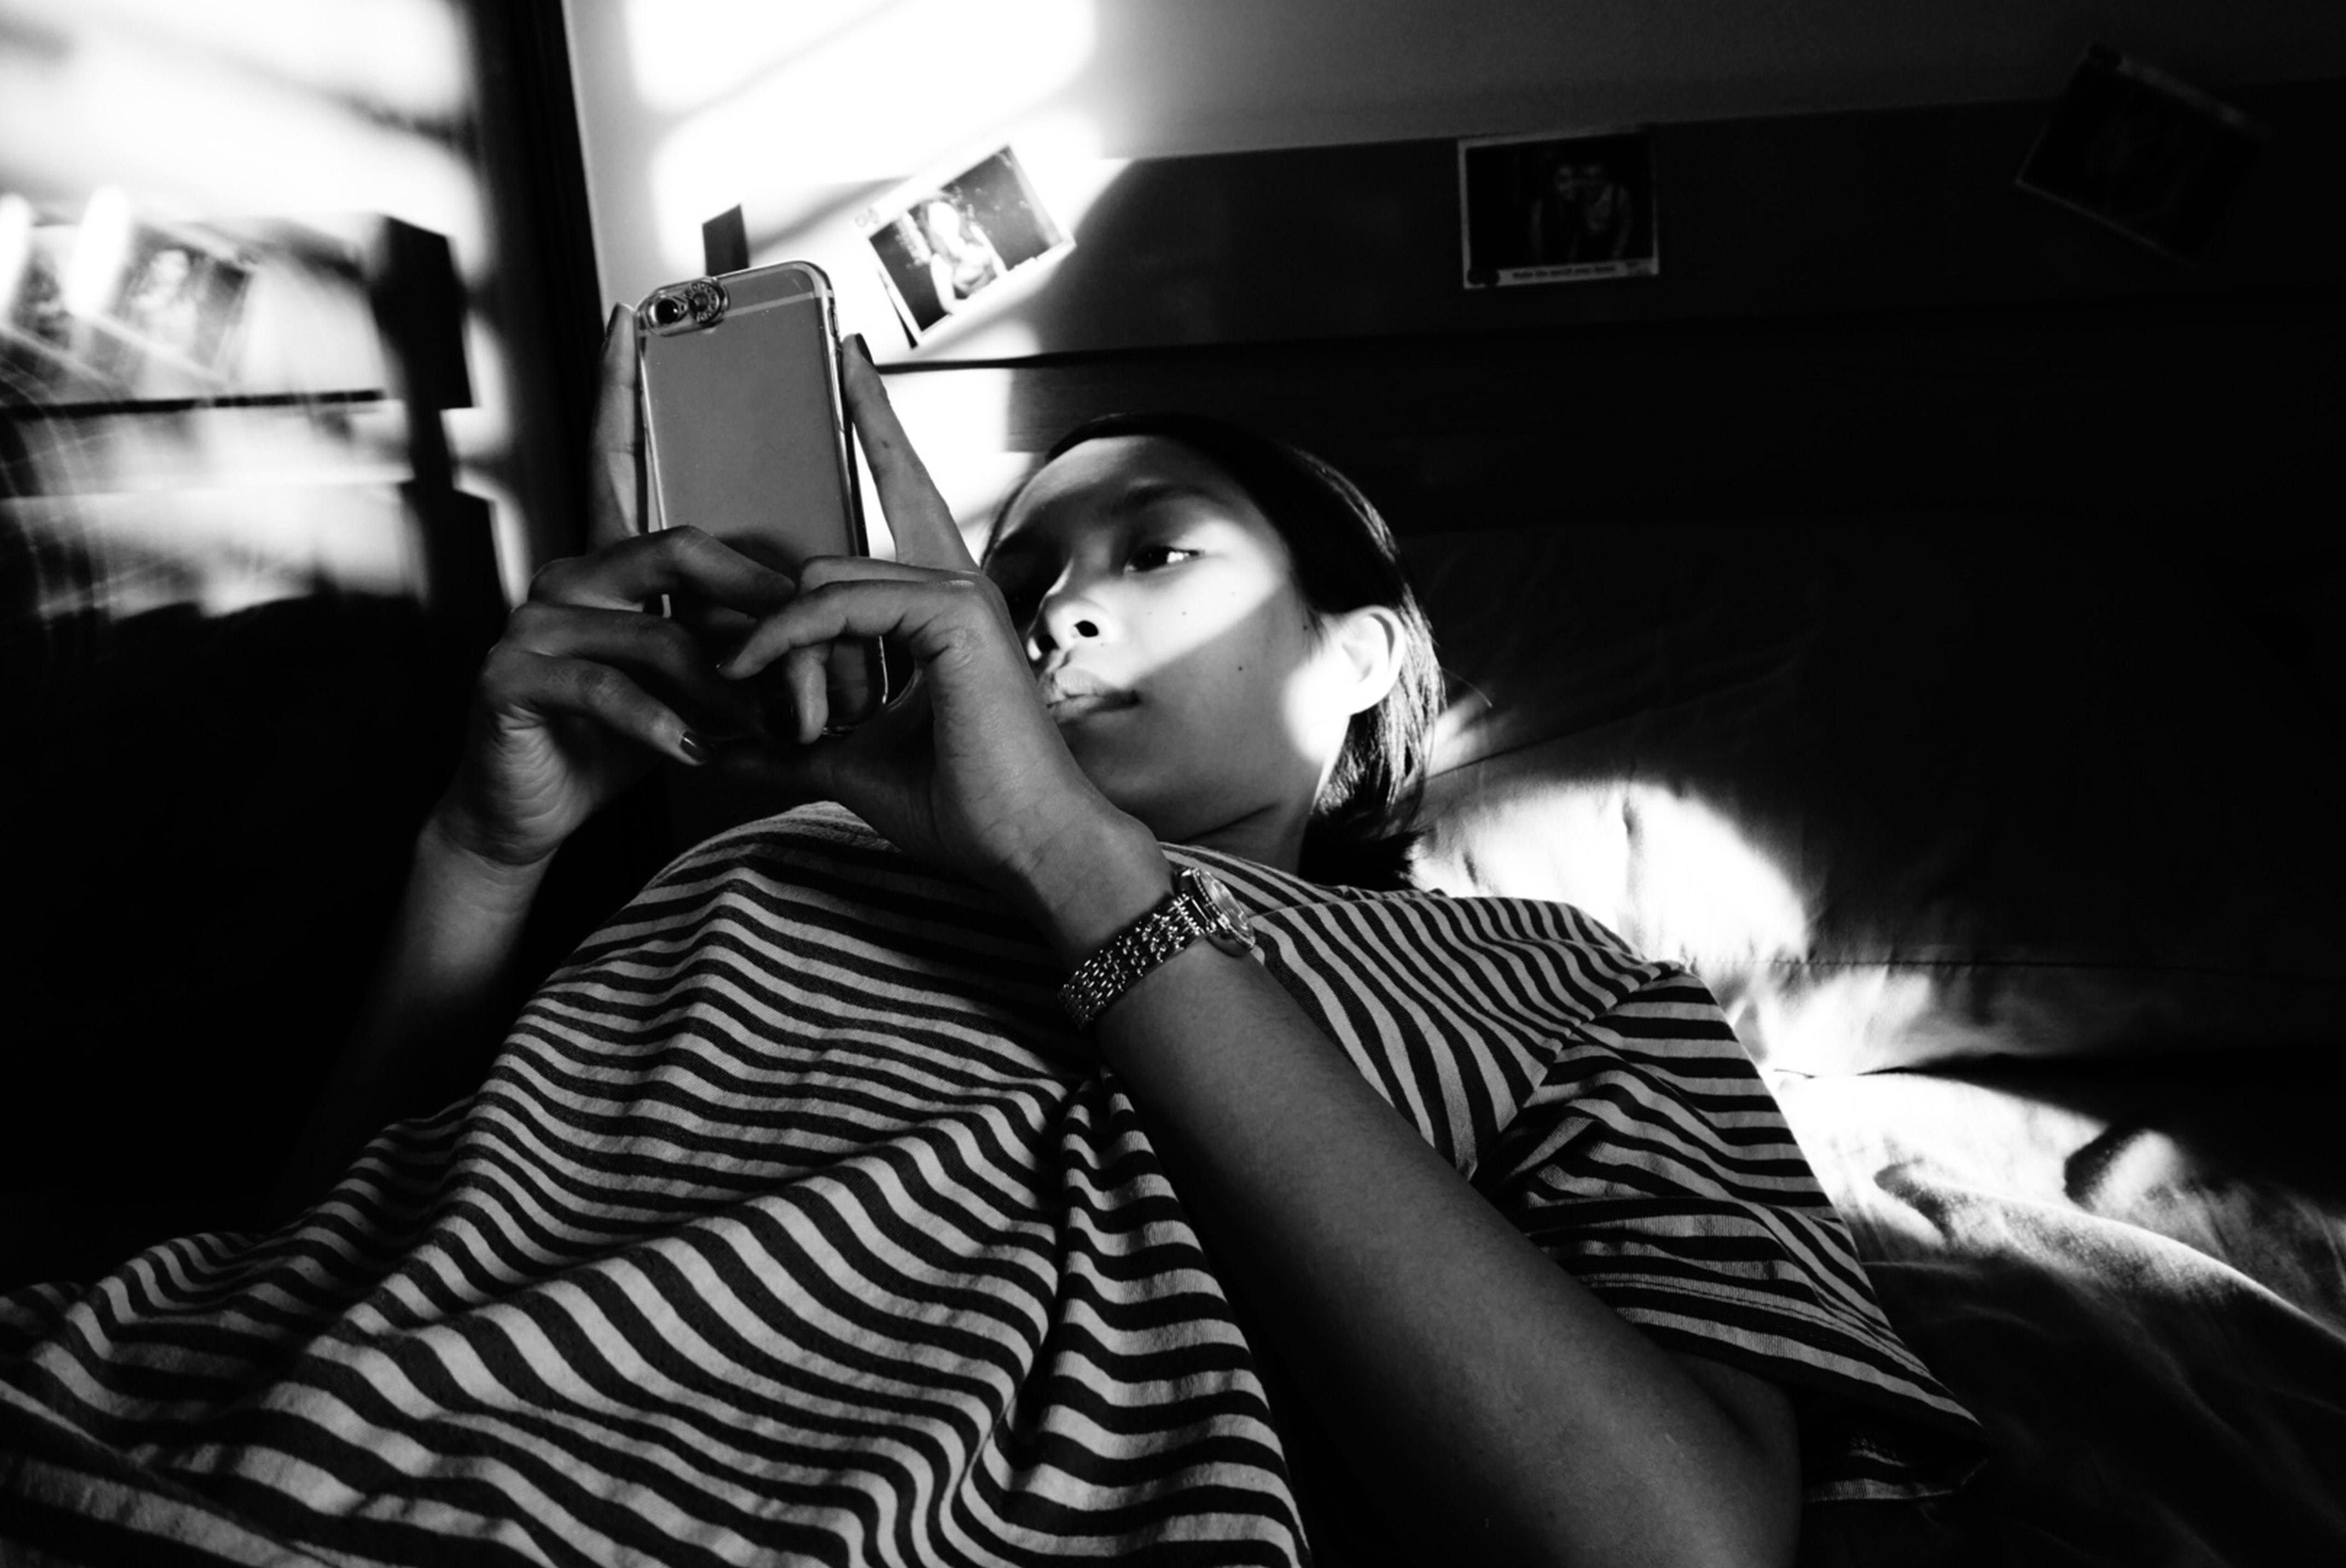 a woman lays on her bed whilst looking at a mobile phone in a black and white picture